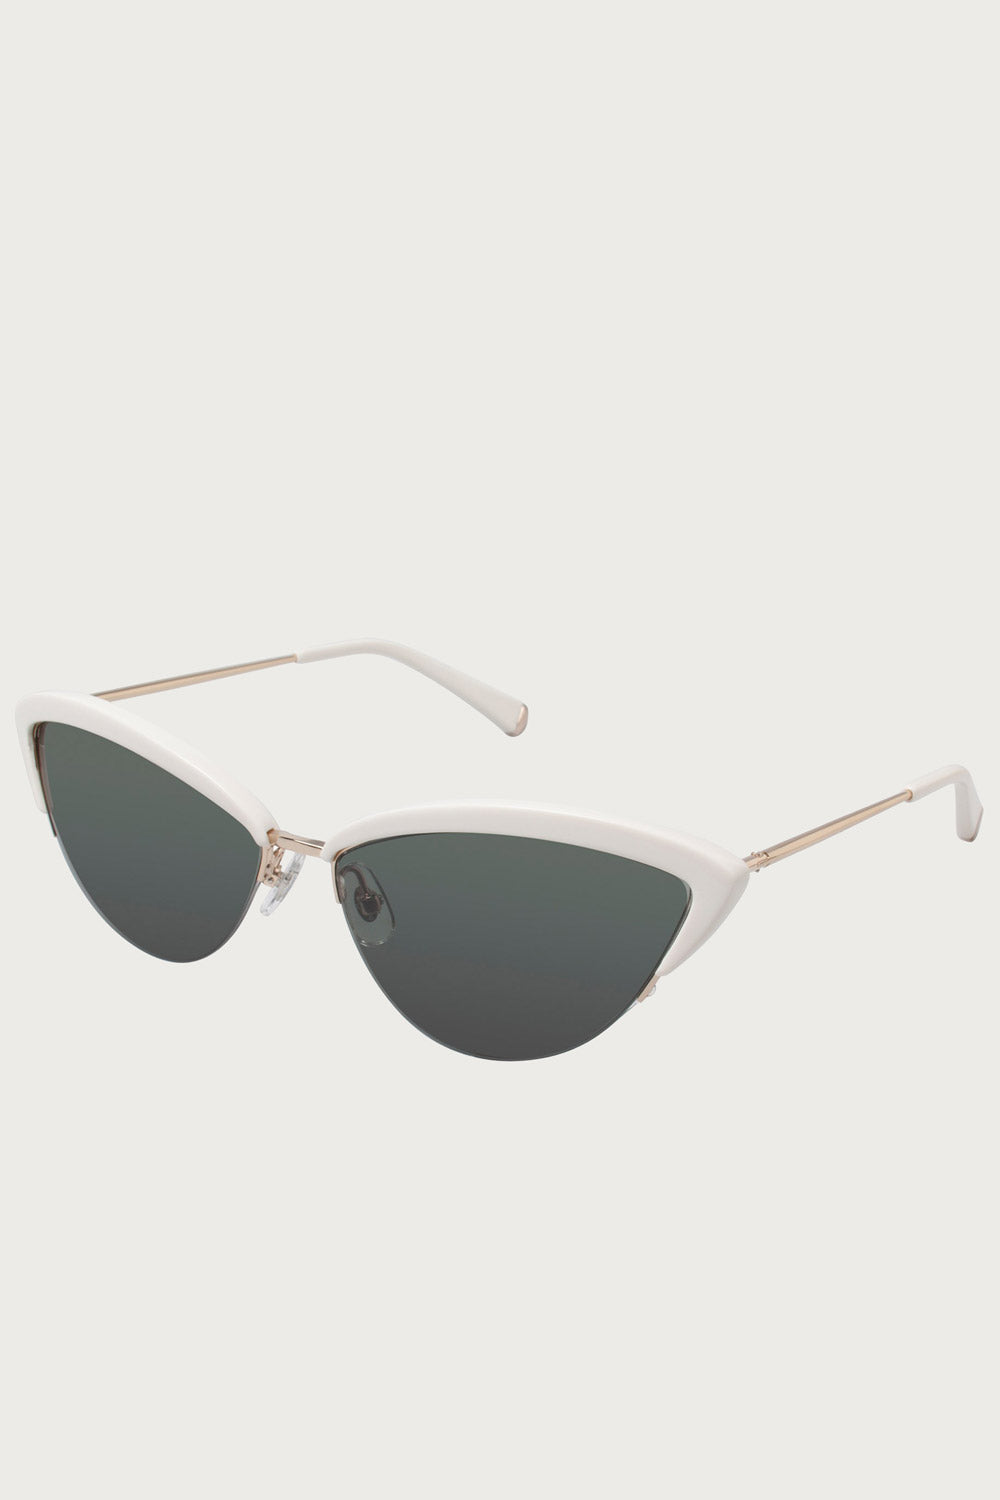 Ally Sunglasses in Bone